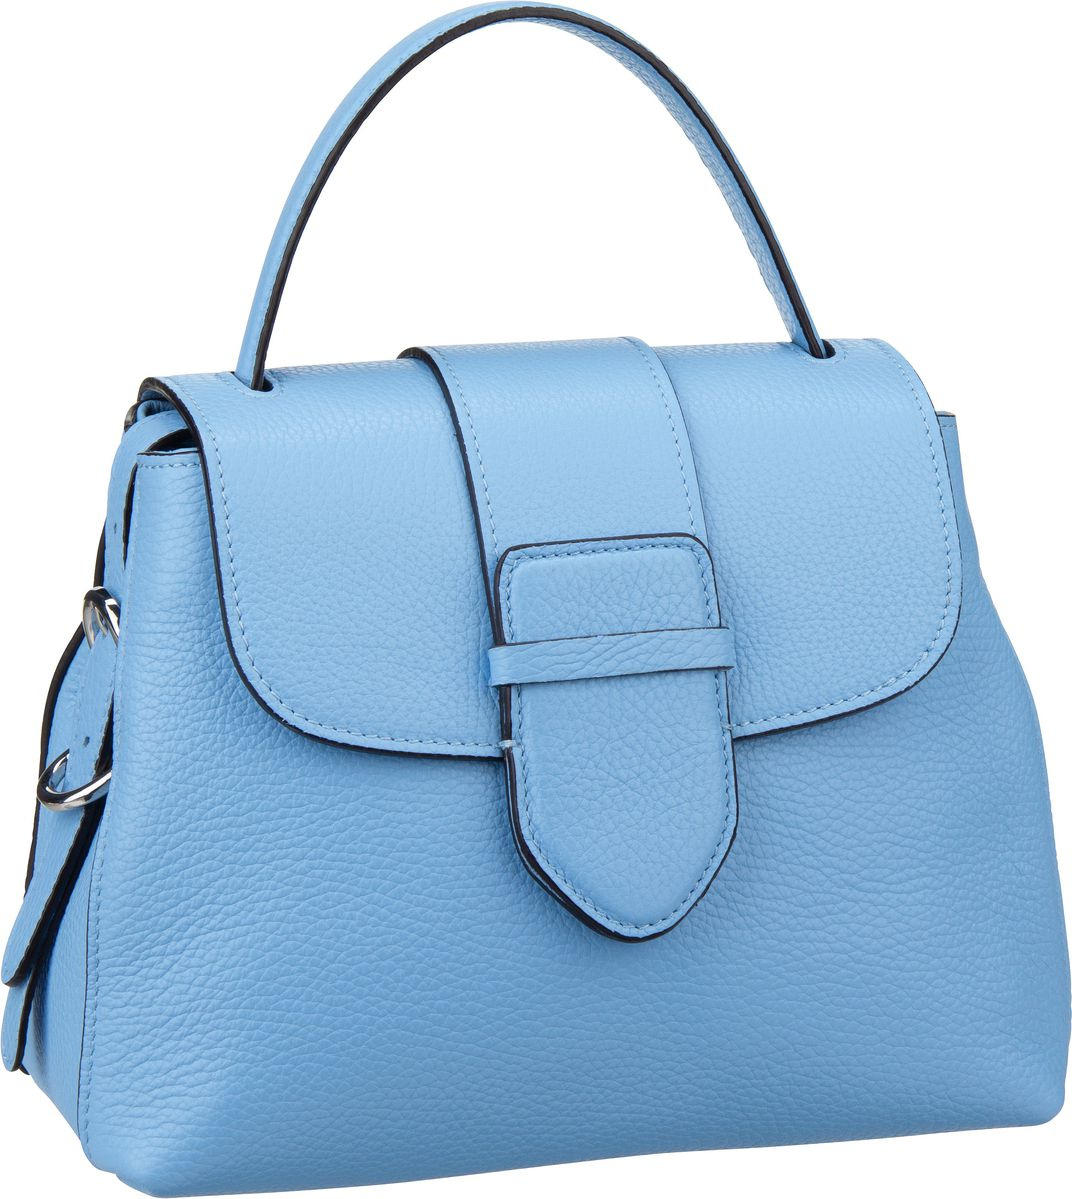 Handtasche Calf Adria 28178 Light Blue